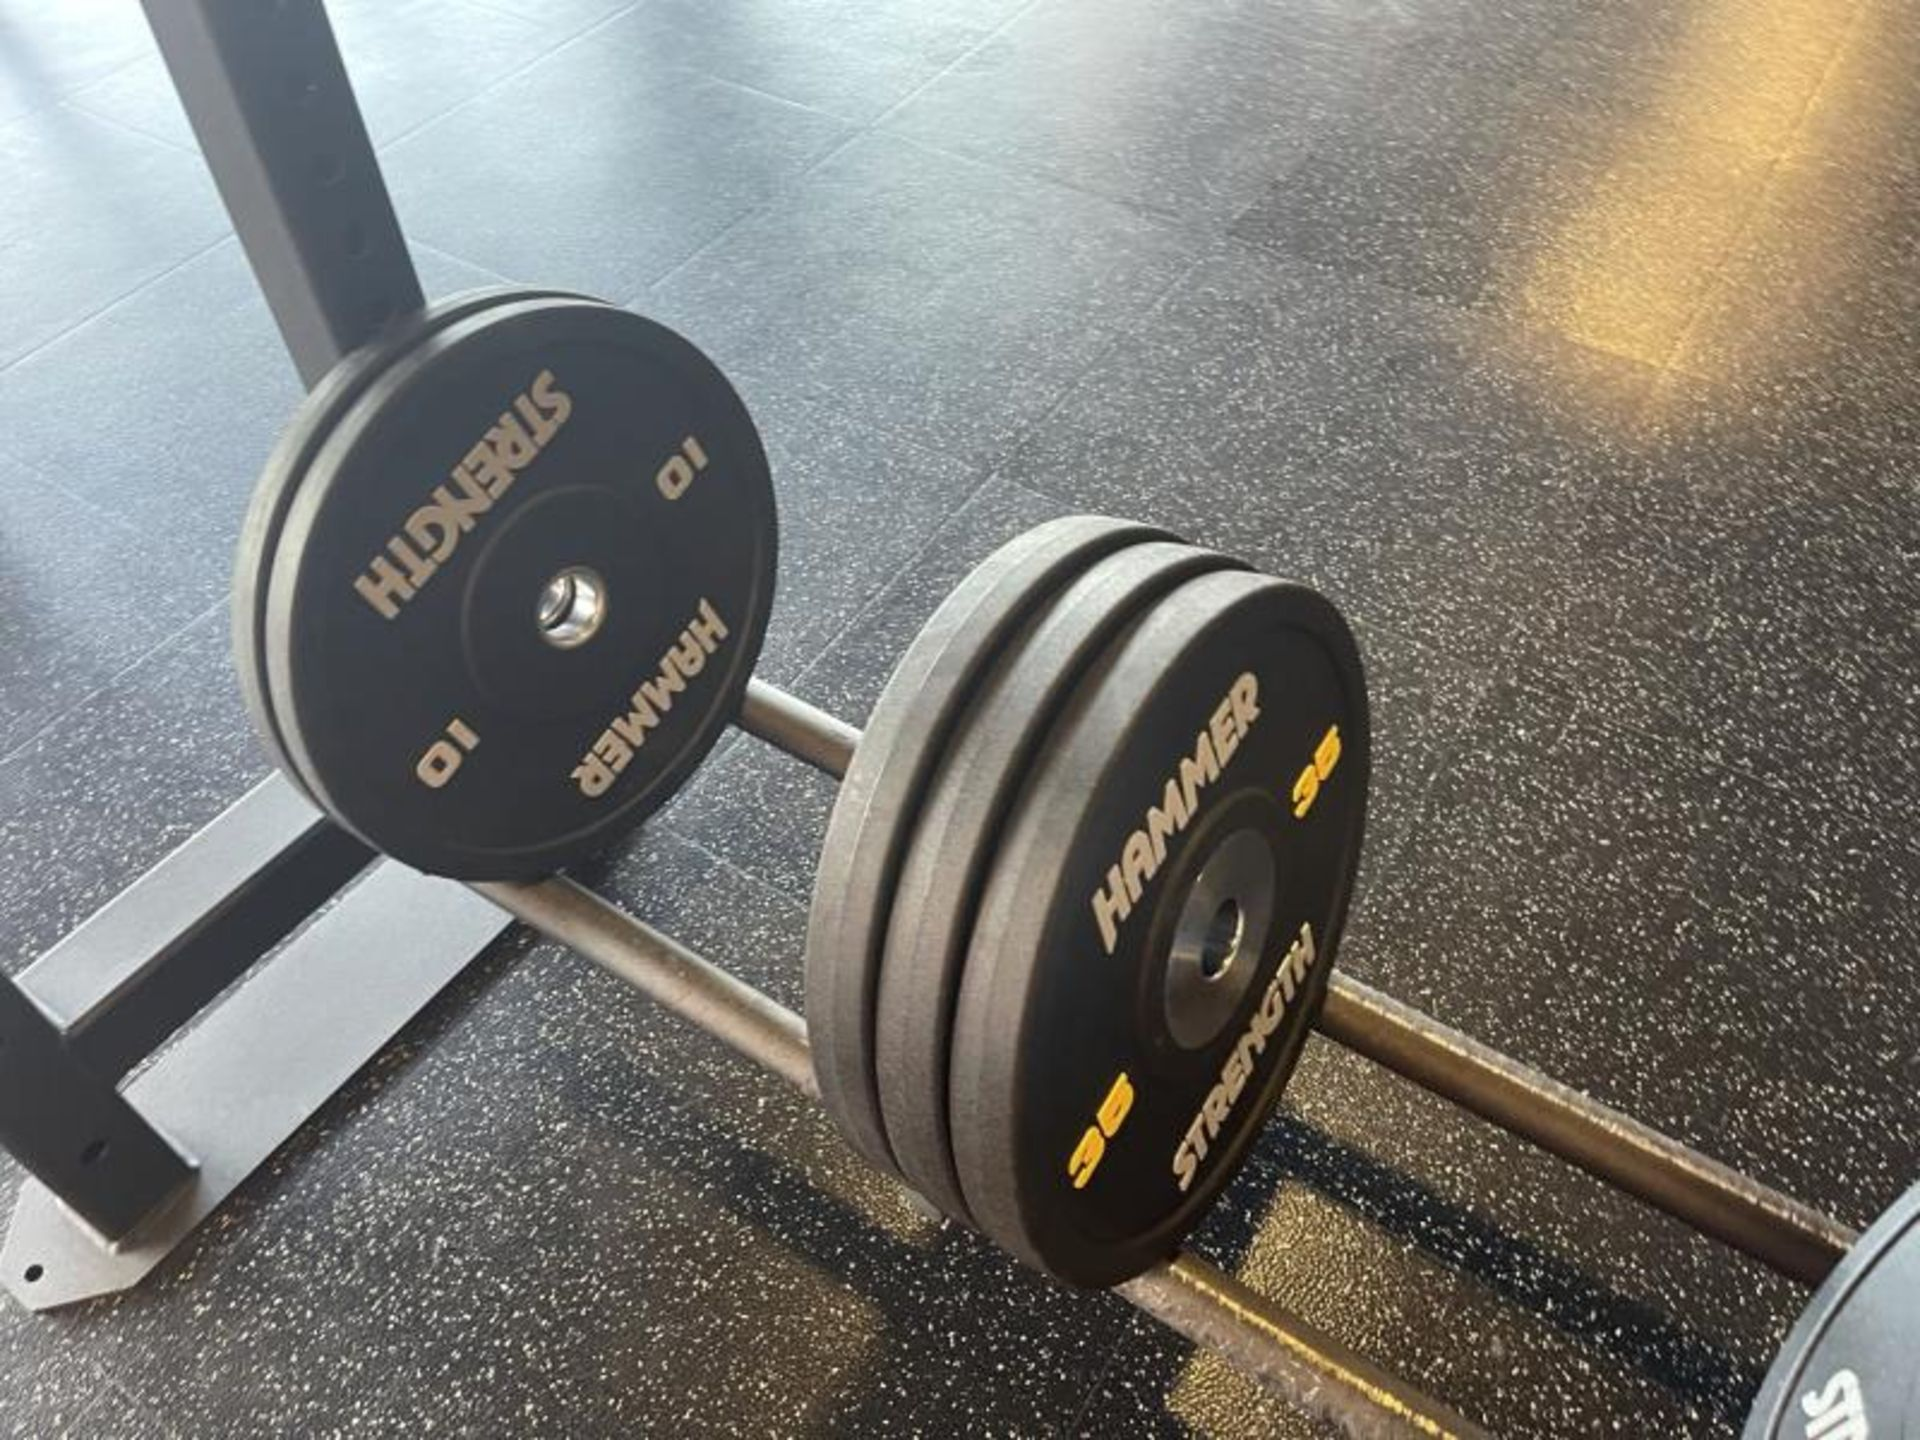 Hammer Strength Multi Station Cage with Hammer Strength Weighted Plates, 4 Bars - Image 9 of 11